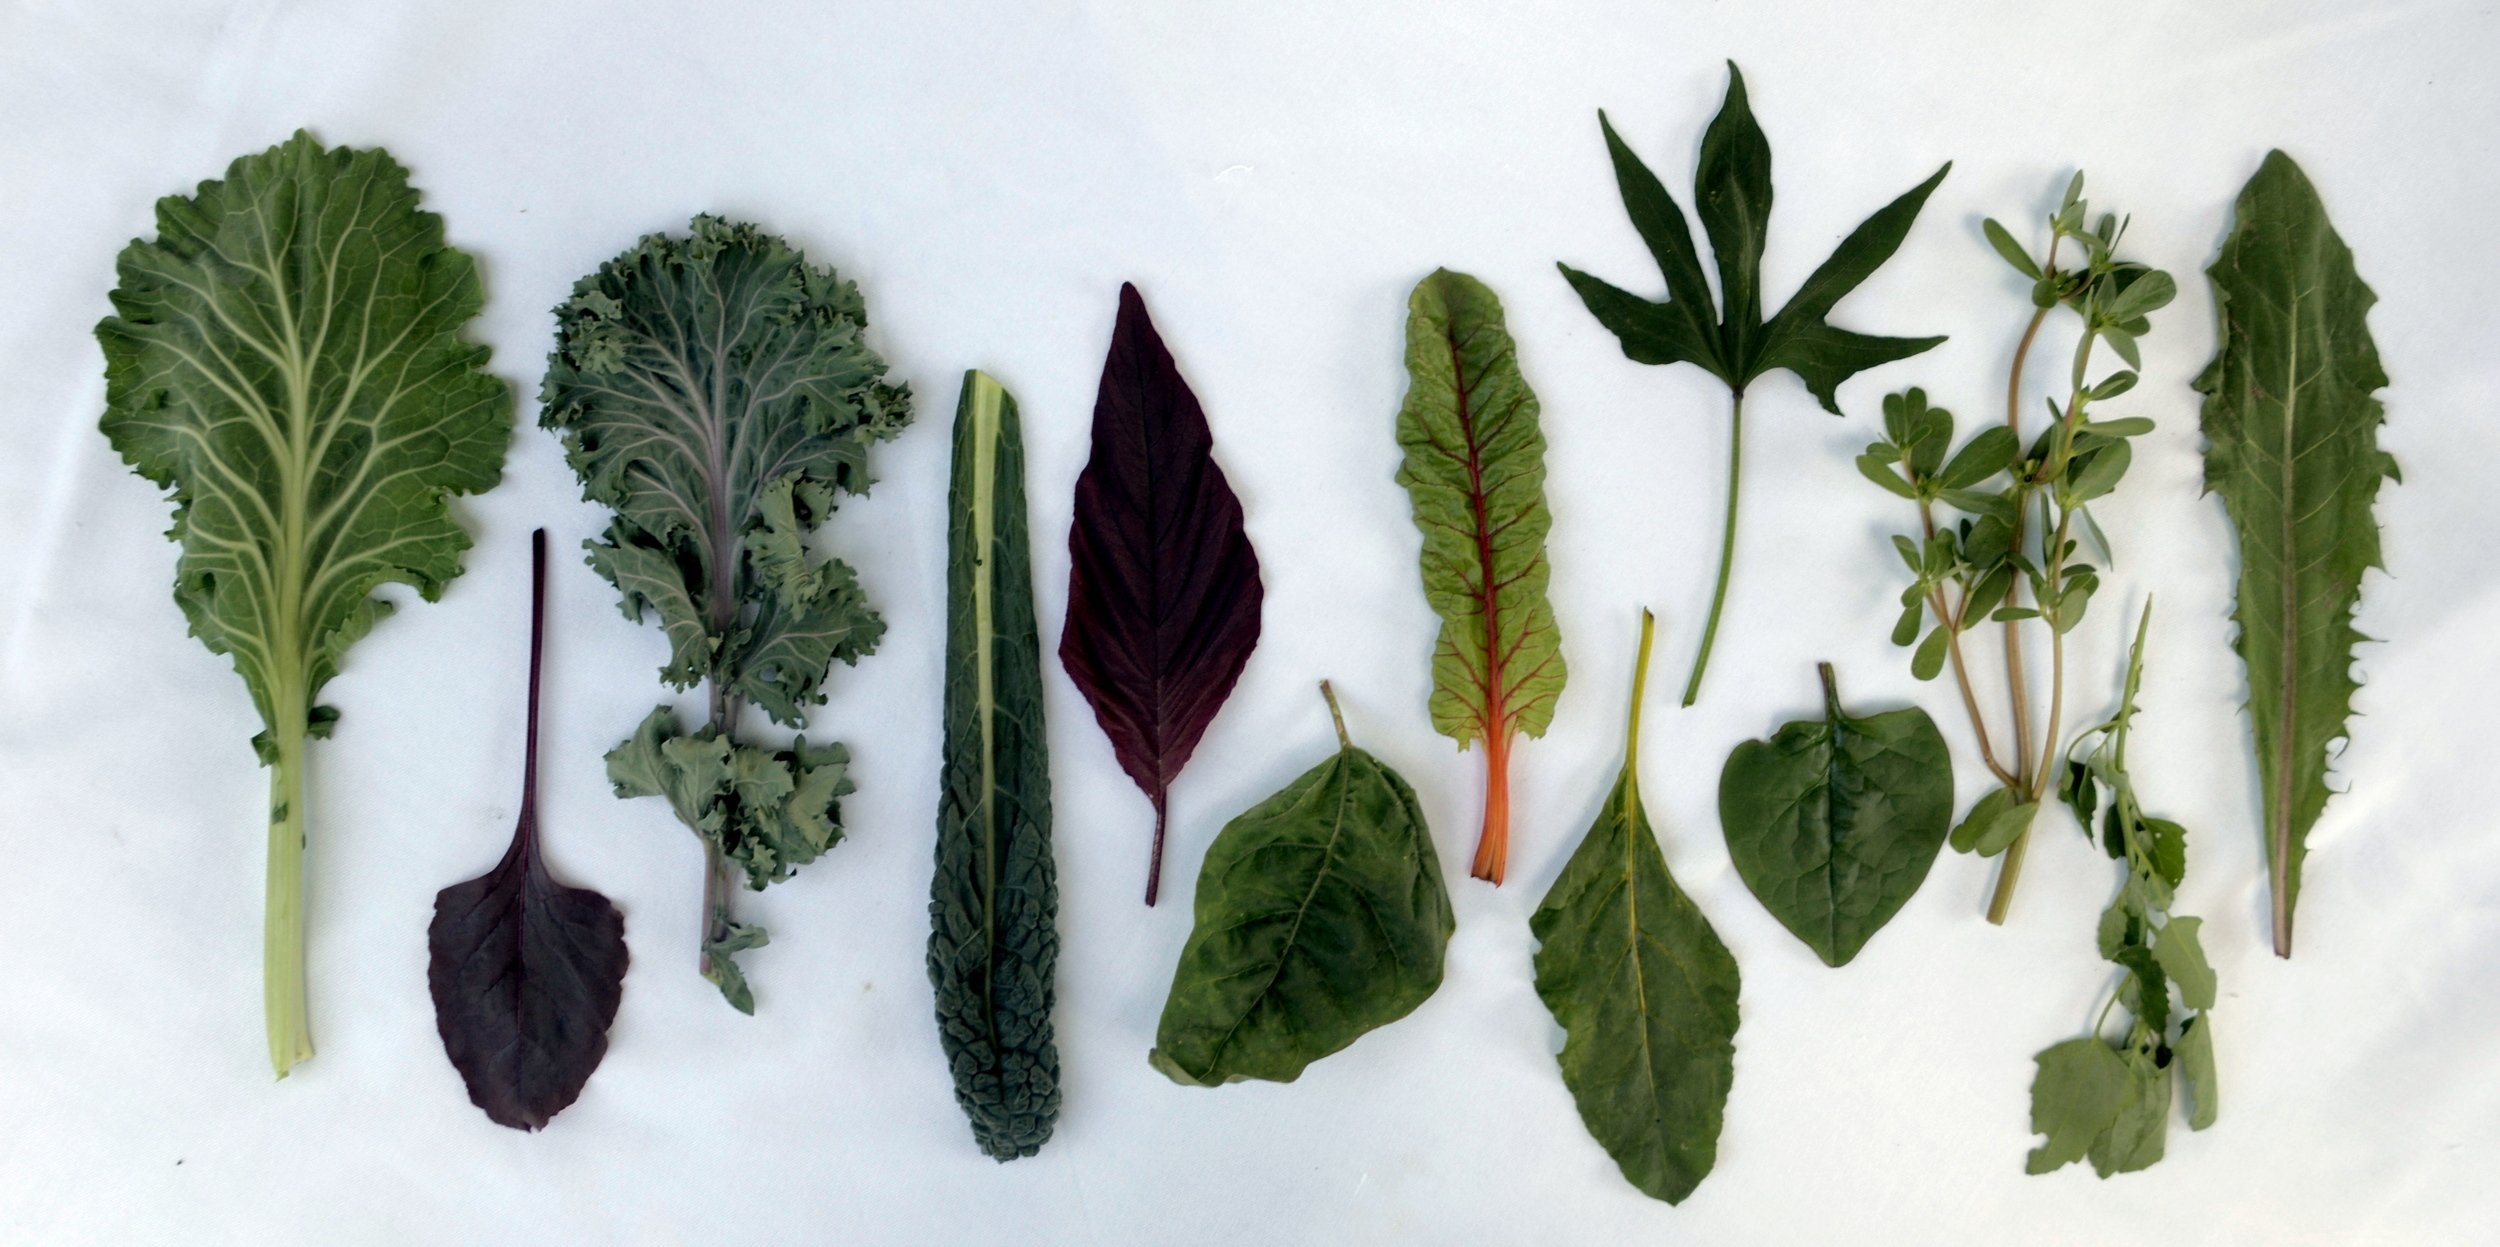 Leaves left to right: Heodrig collard, Bull's Blood beet, Vitessa kale, Lacinato kale, Kerala Red amaranth, Green orach, Orange chard, Burpee's Golden beet, Gold Nugget sweet potato, Red malabar spinach, purslane, lamb's quarters, dandelion.